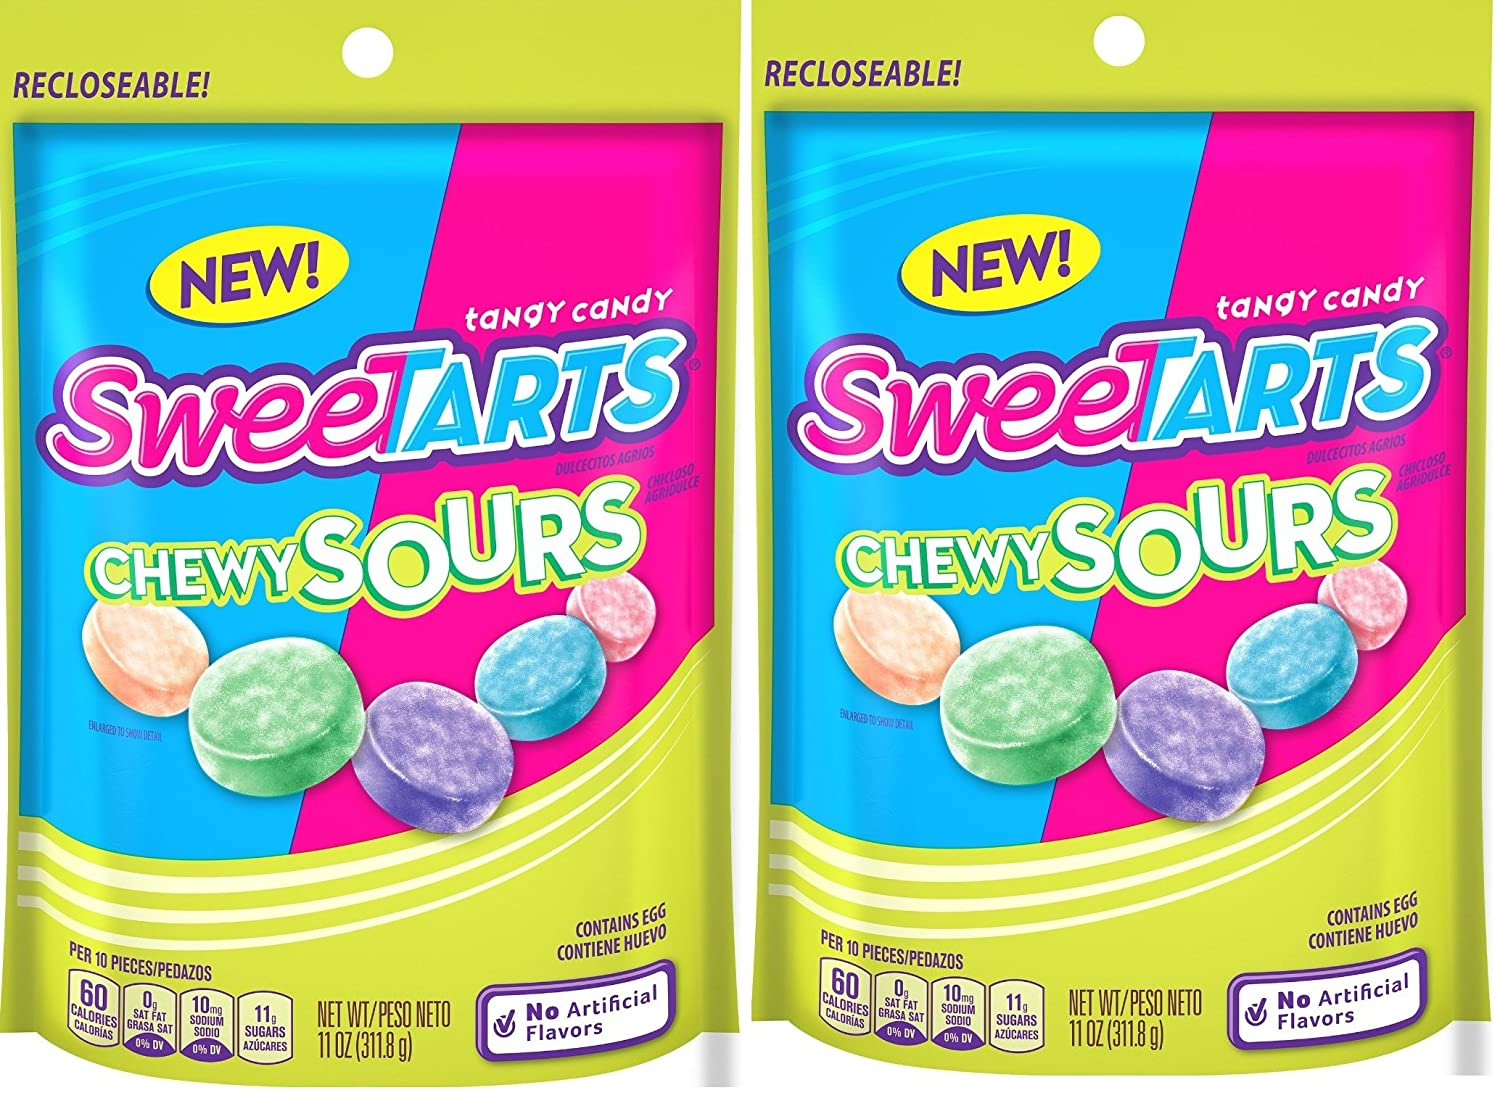 SweeTARTS Chewy Sours Resealable Bag (2 Pack), 11 Ounces each